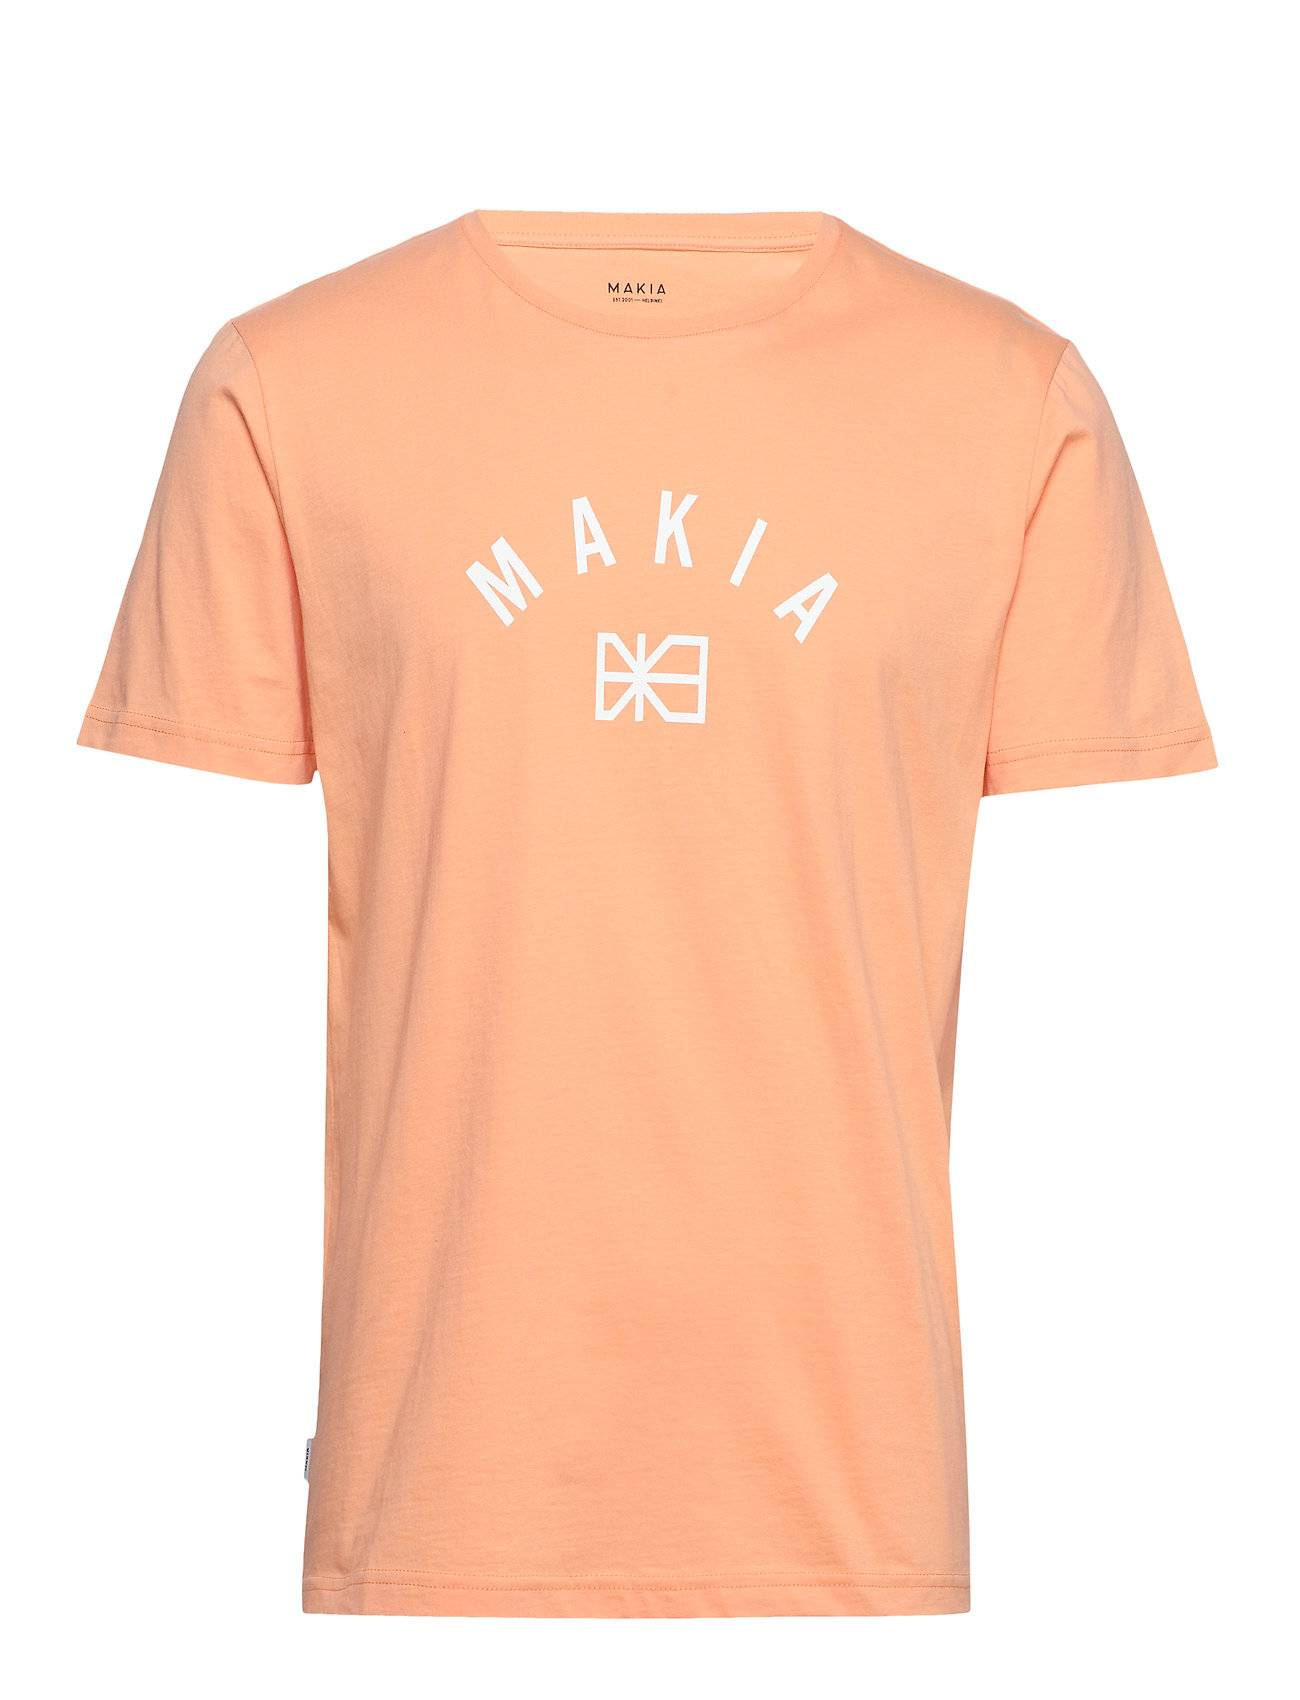 Makia Brand T-Shirt T-shirts Short-sleeved Oranssi Makia